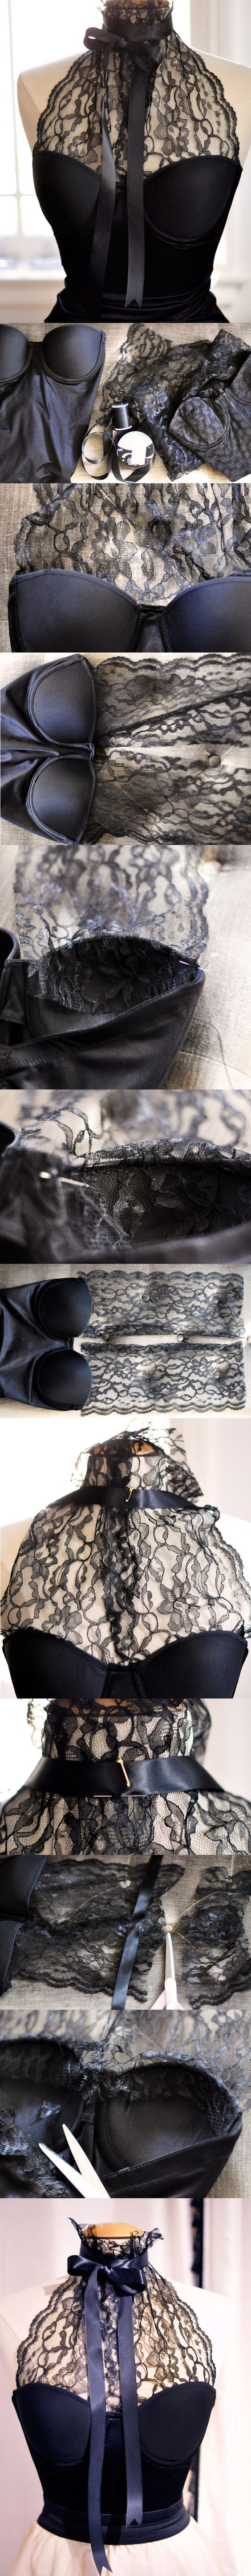 Interesting Craft Ideas With Lace: